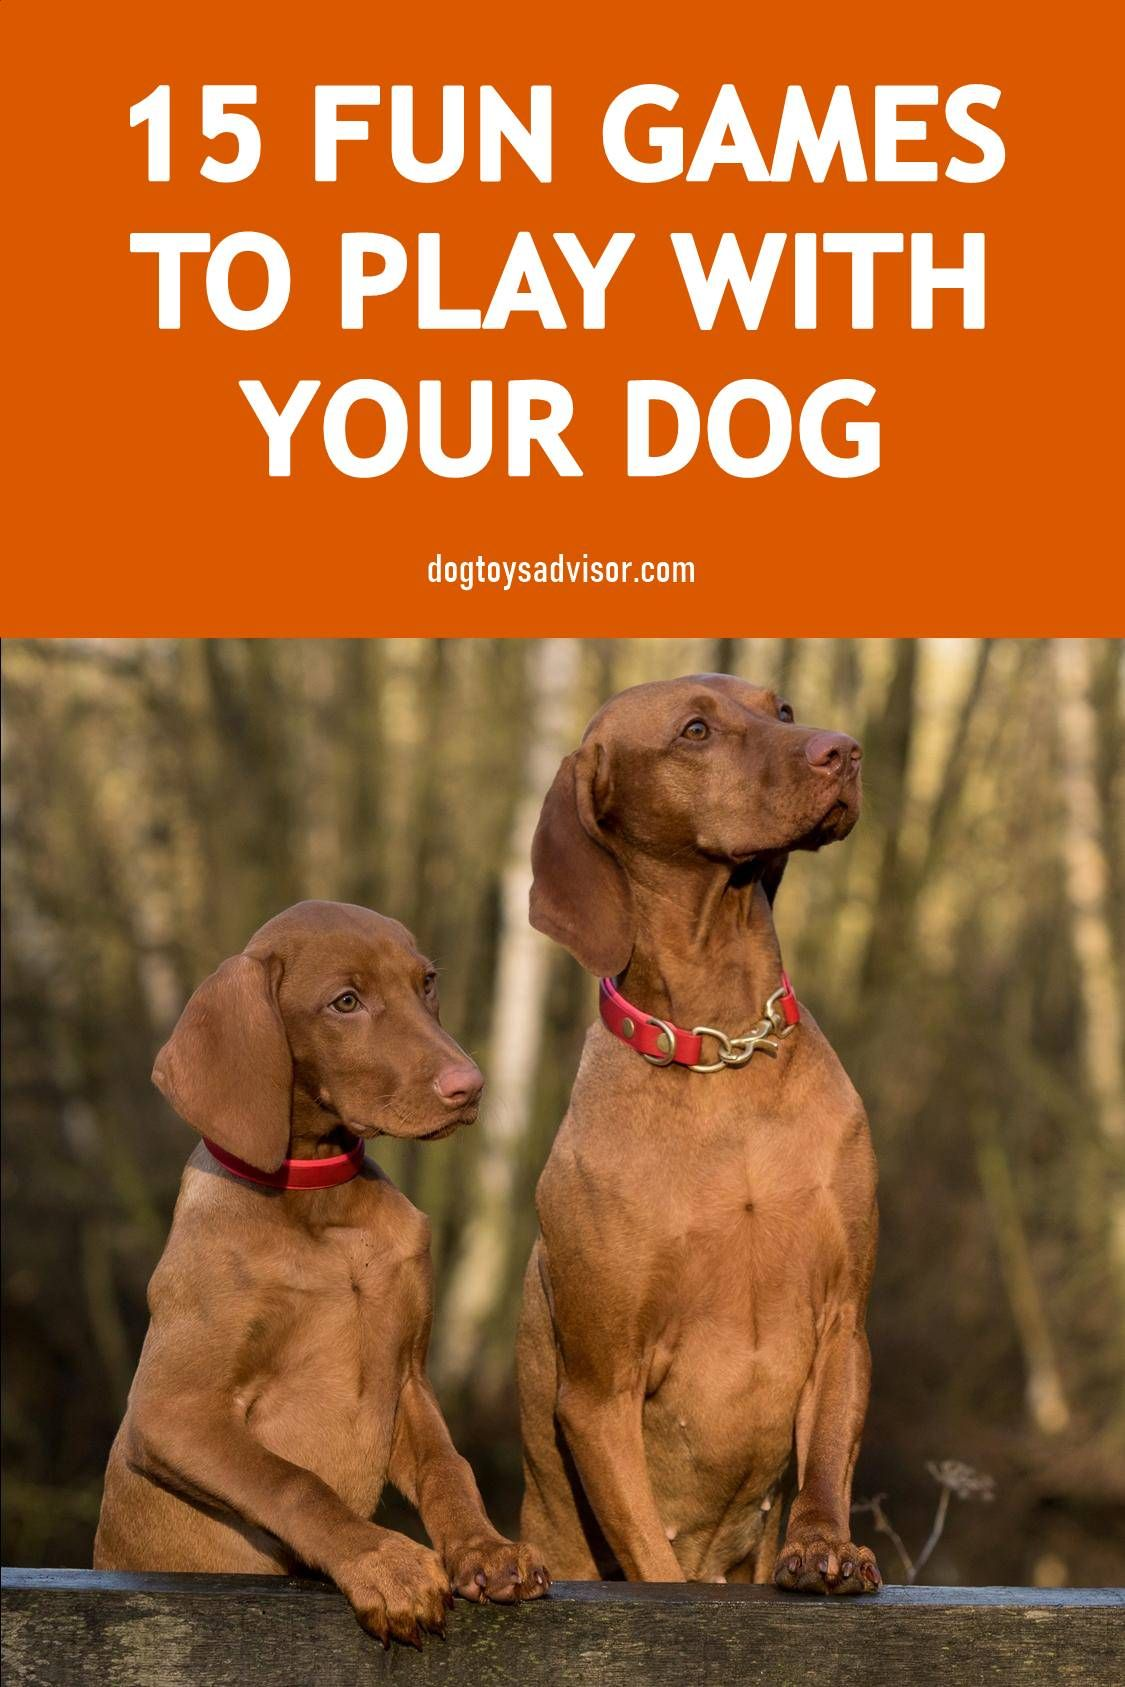 Looking for simple and fun games to play with your dog